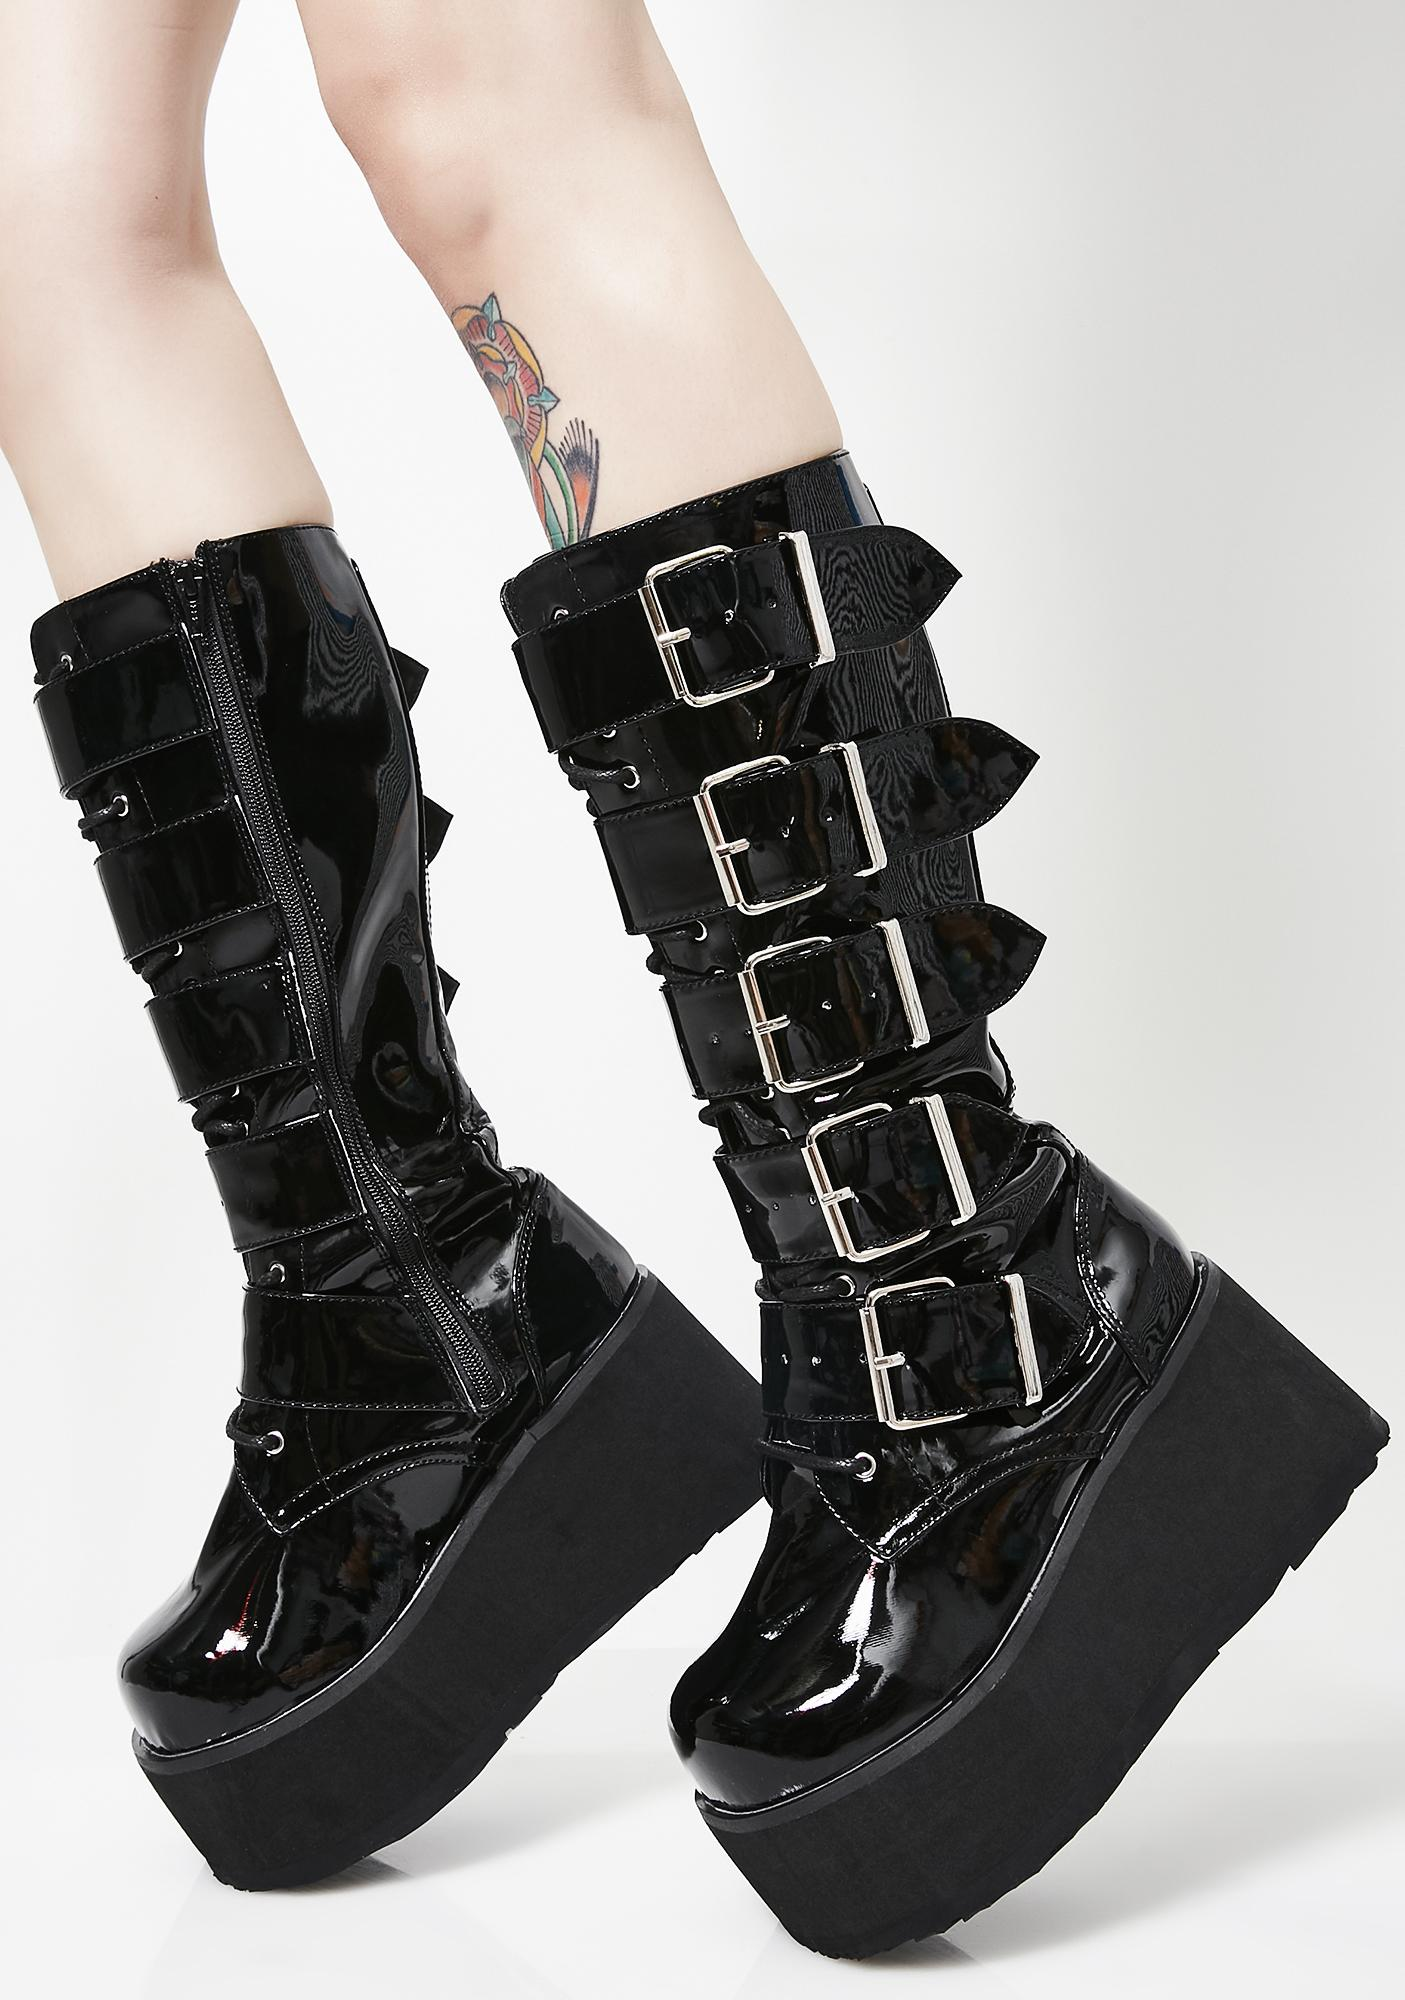 775b8d35caf6 Demonia Trashville Knee High Boots